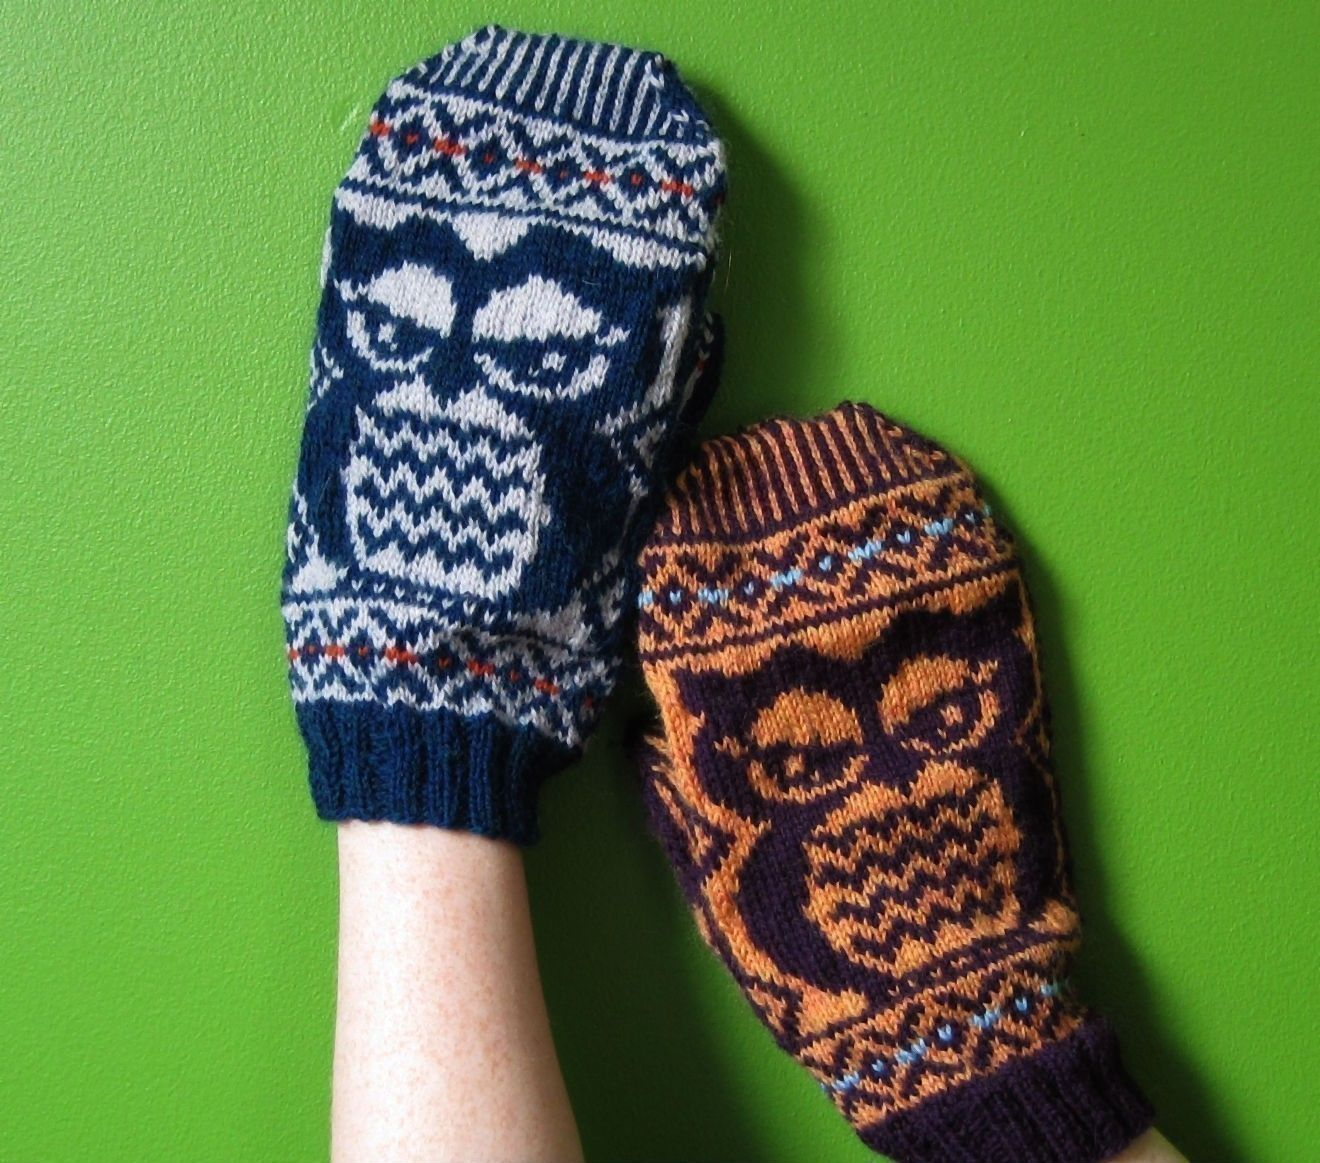 Must buy this pattern and knit these...unless someone else wants to ...